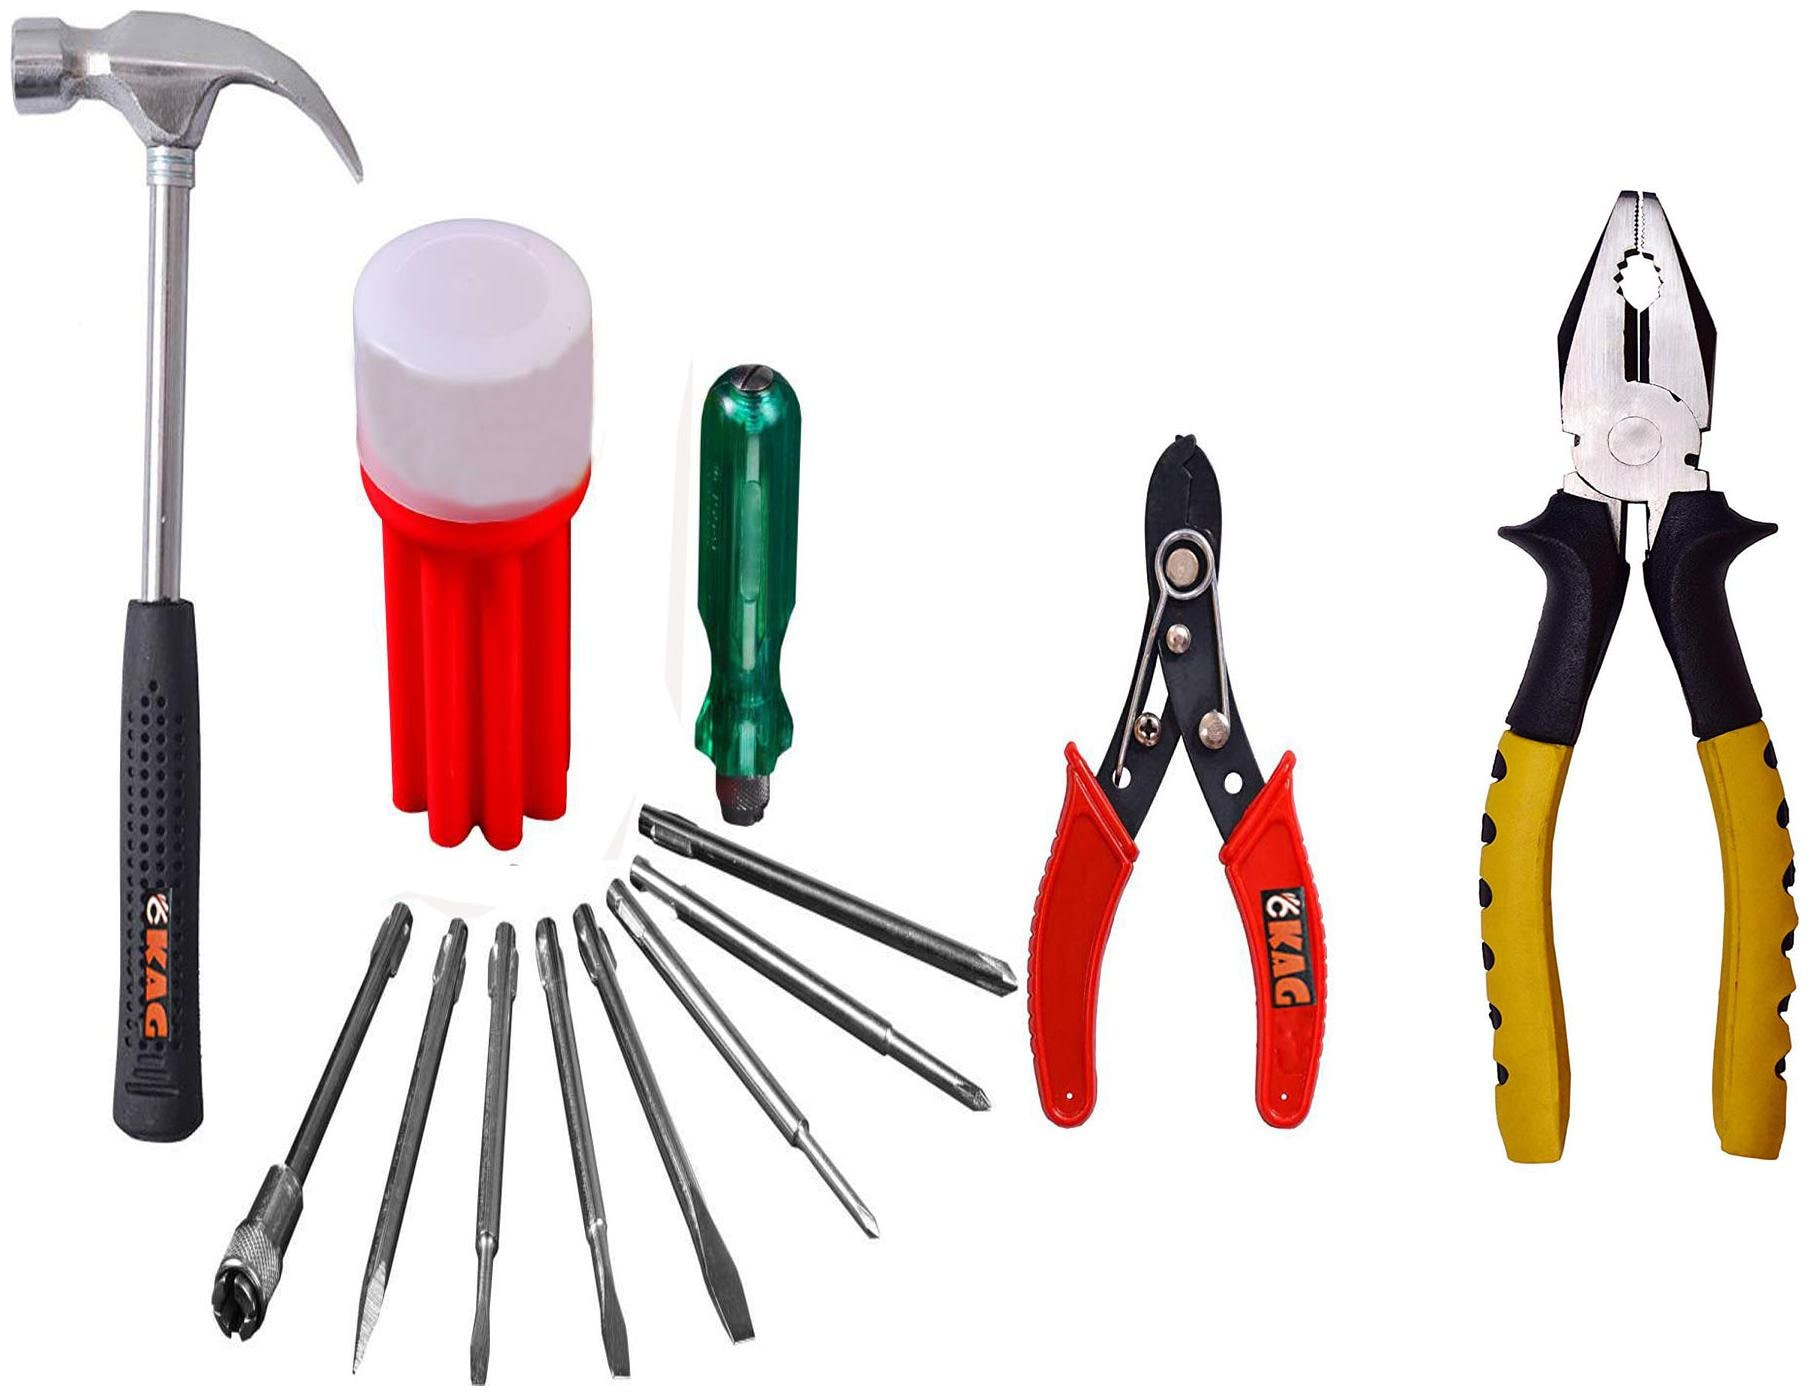 Kag R815 Home Hand Tool Kit(1 pc Of Plier;Screw Driver Kit;Wire Cutter...